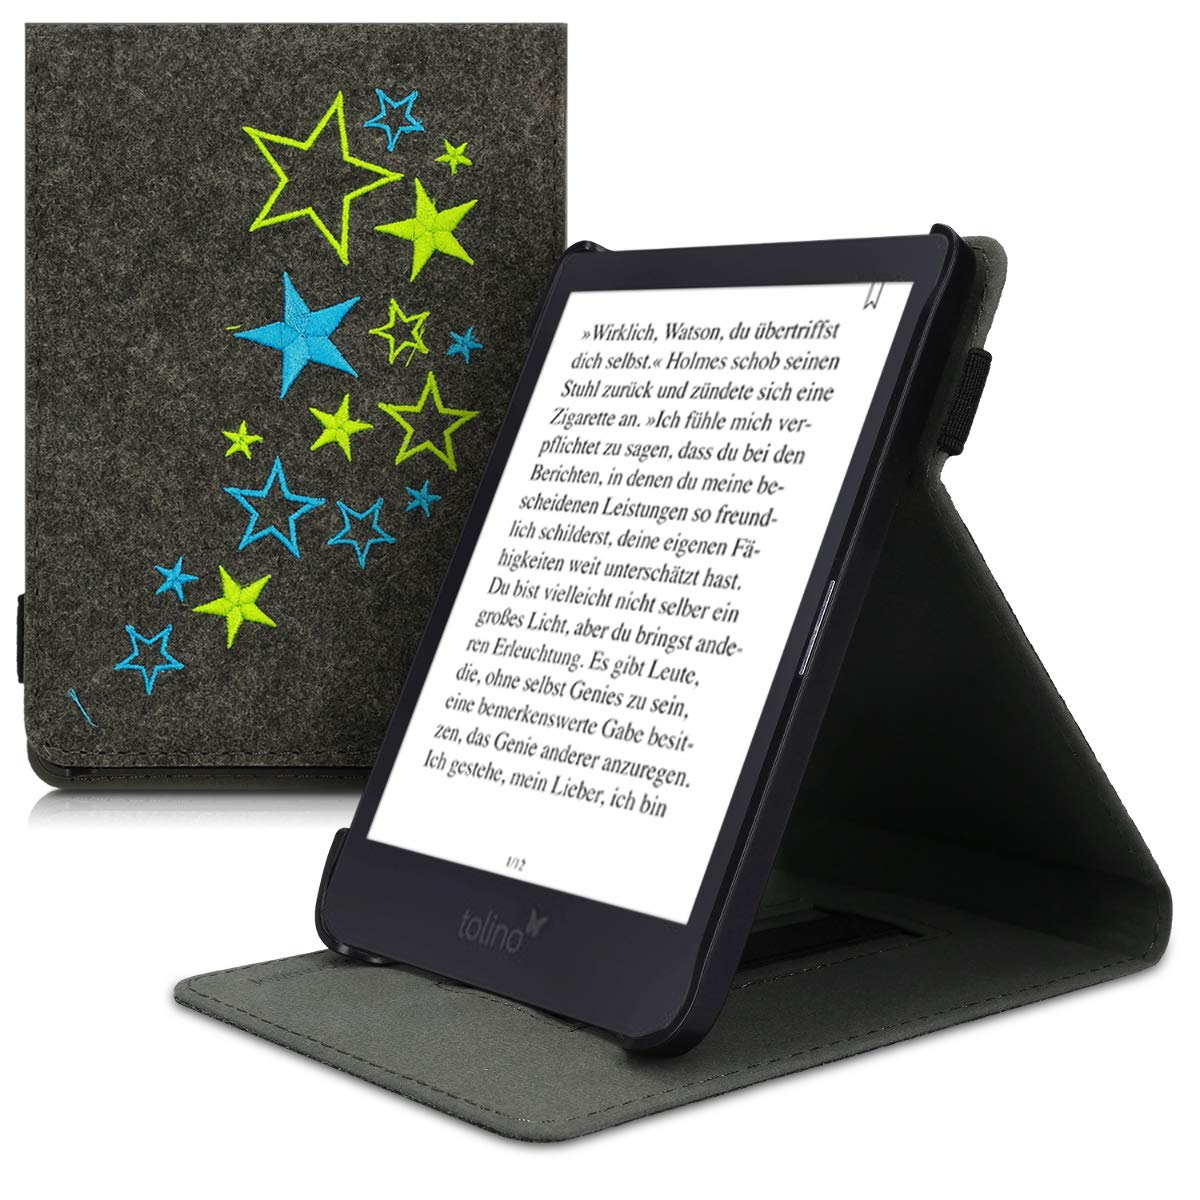 kwmobile Funda para e-Reader Tolino Shine 3: Amazon.es: Electrónica